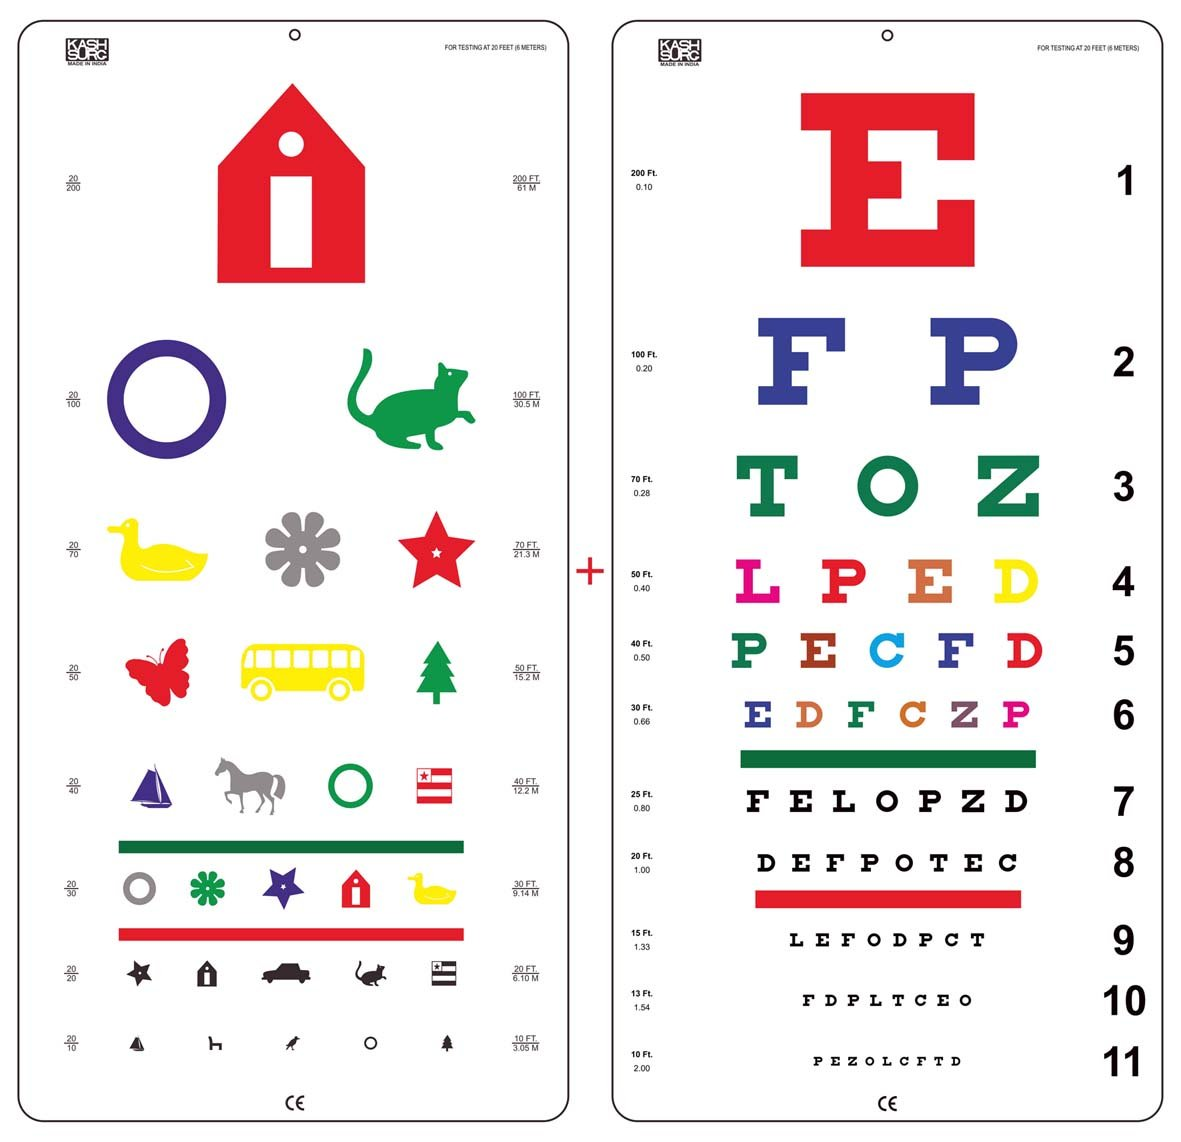 4cb89a1a2f Amazon.com  Snellen Color Eye Chart and Pediatric Color Vision Eye Chart  Size 22 x 11 Inch Combo  Health   Personal Care